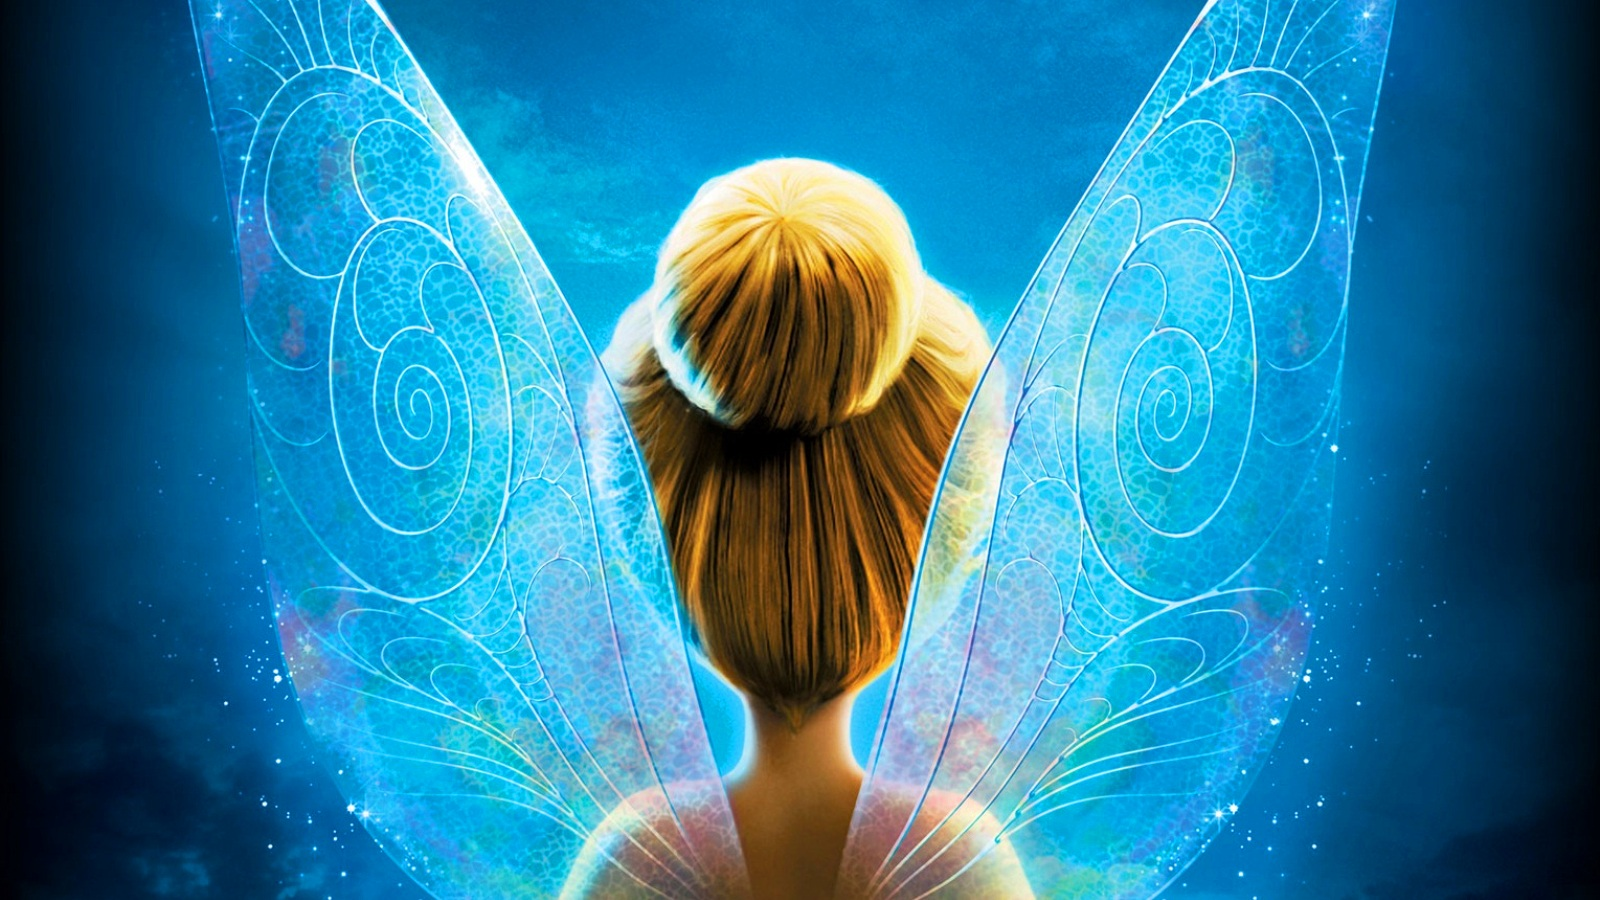 Tinkerbell HD Wallpaper Download Wallpaper